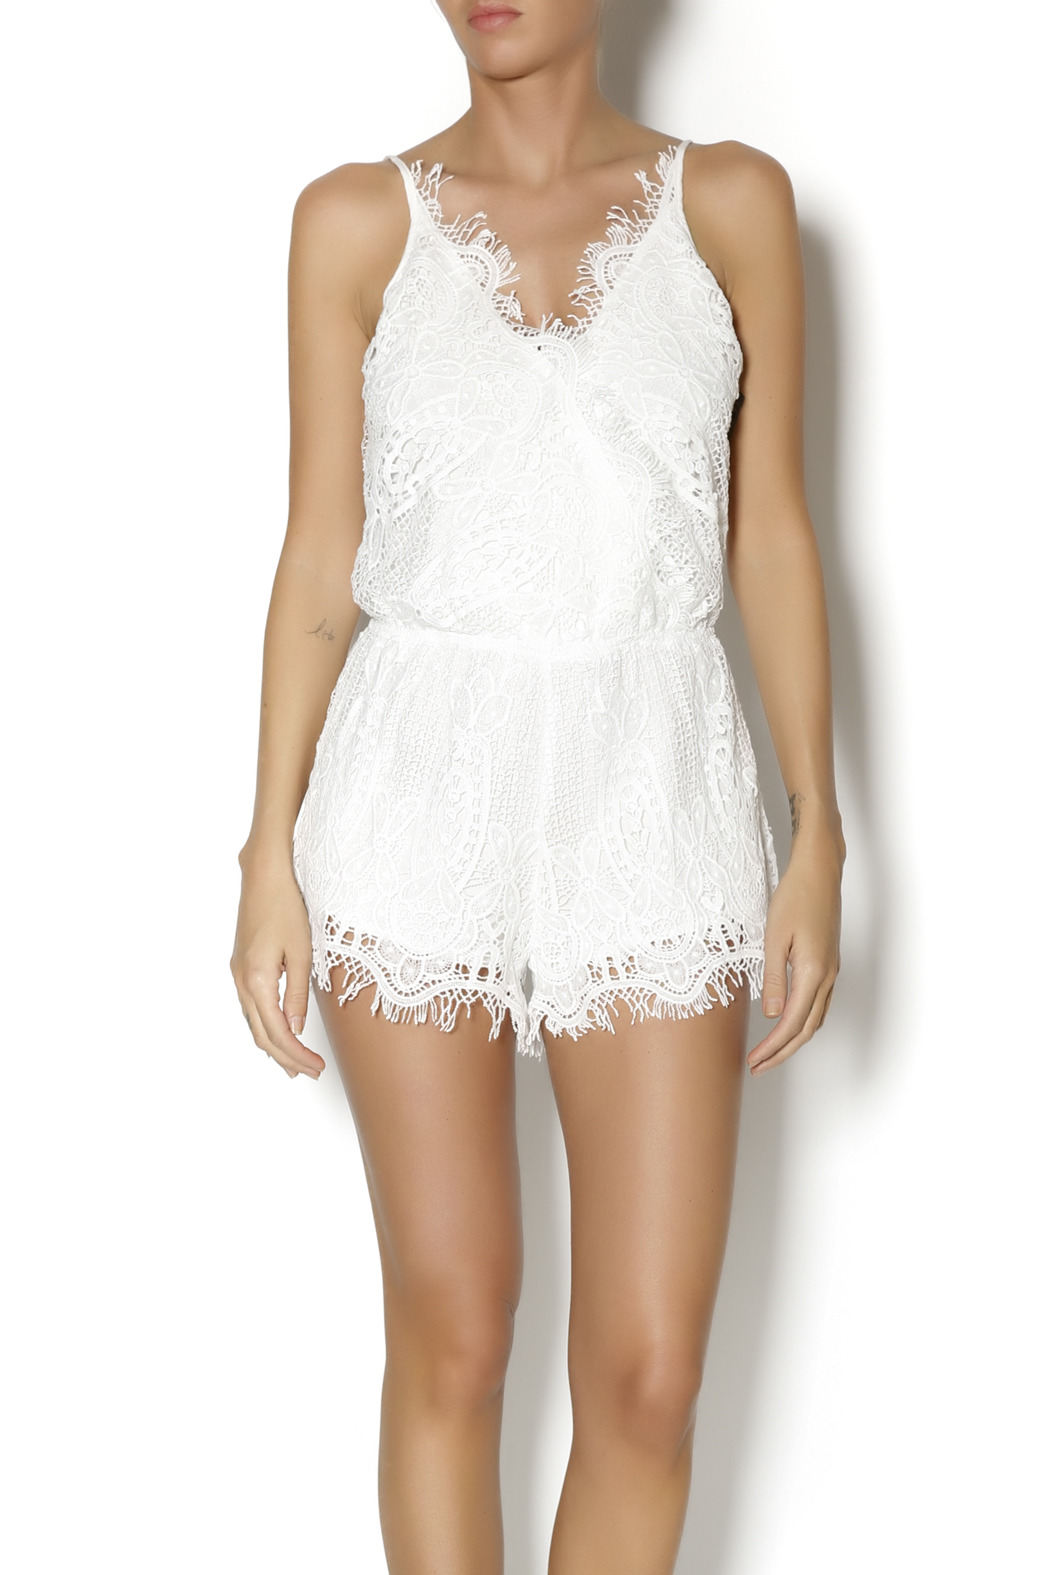 Ruby and Jenna White Lace Romper from Manhattan — Shoptiques